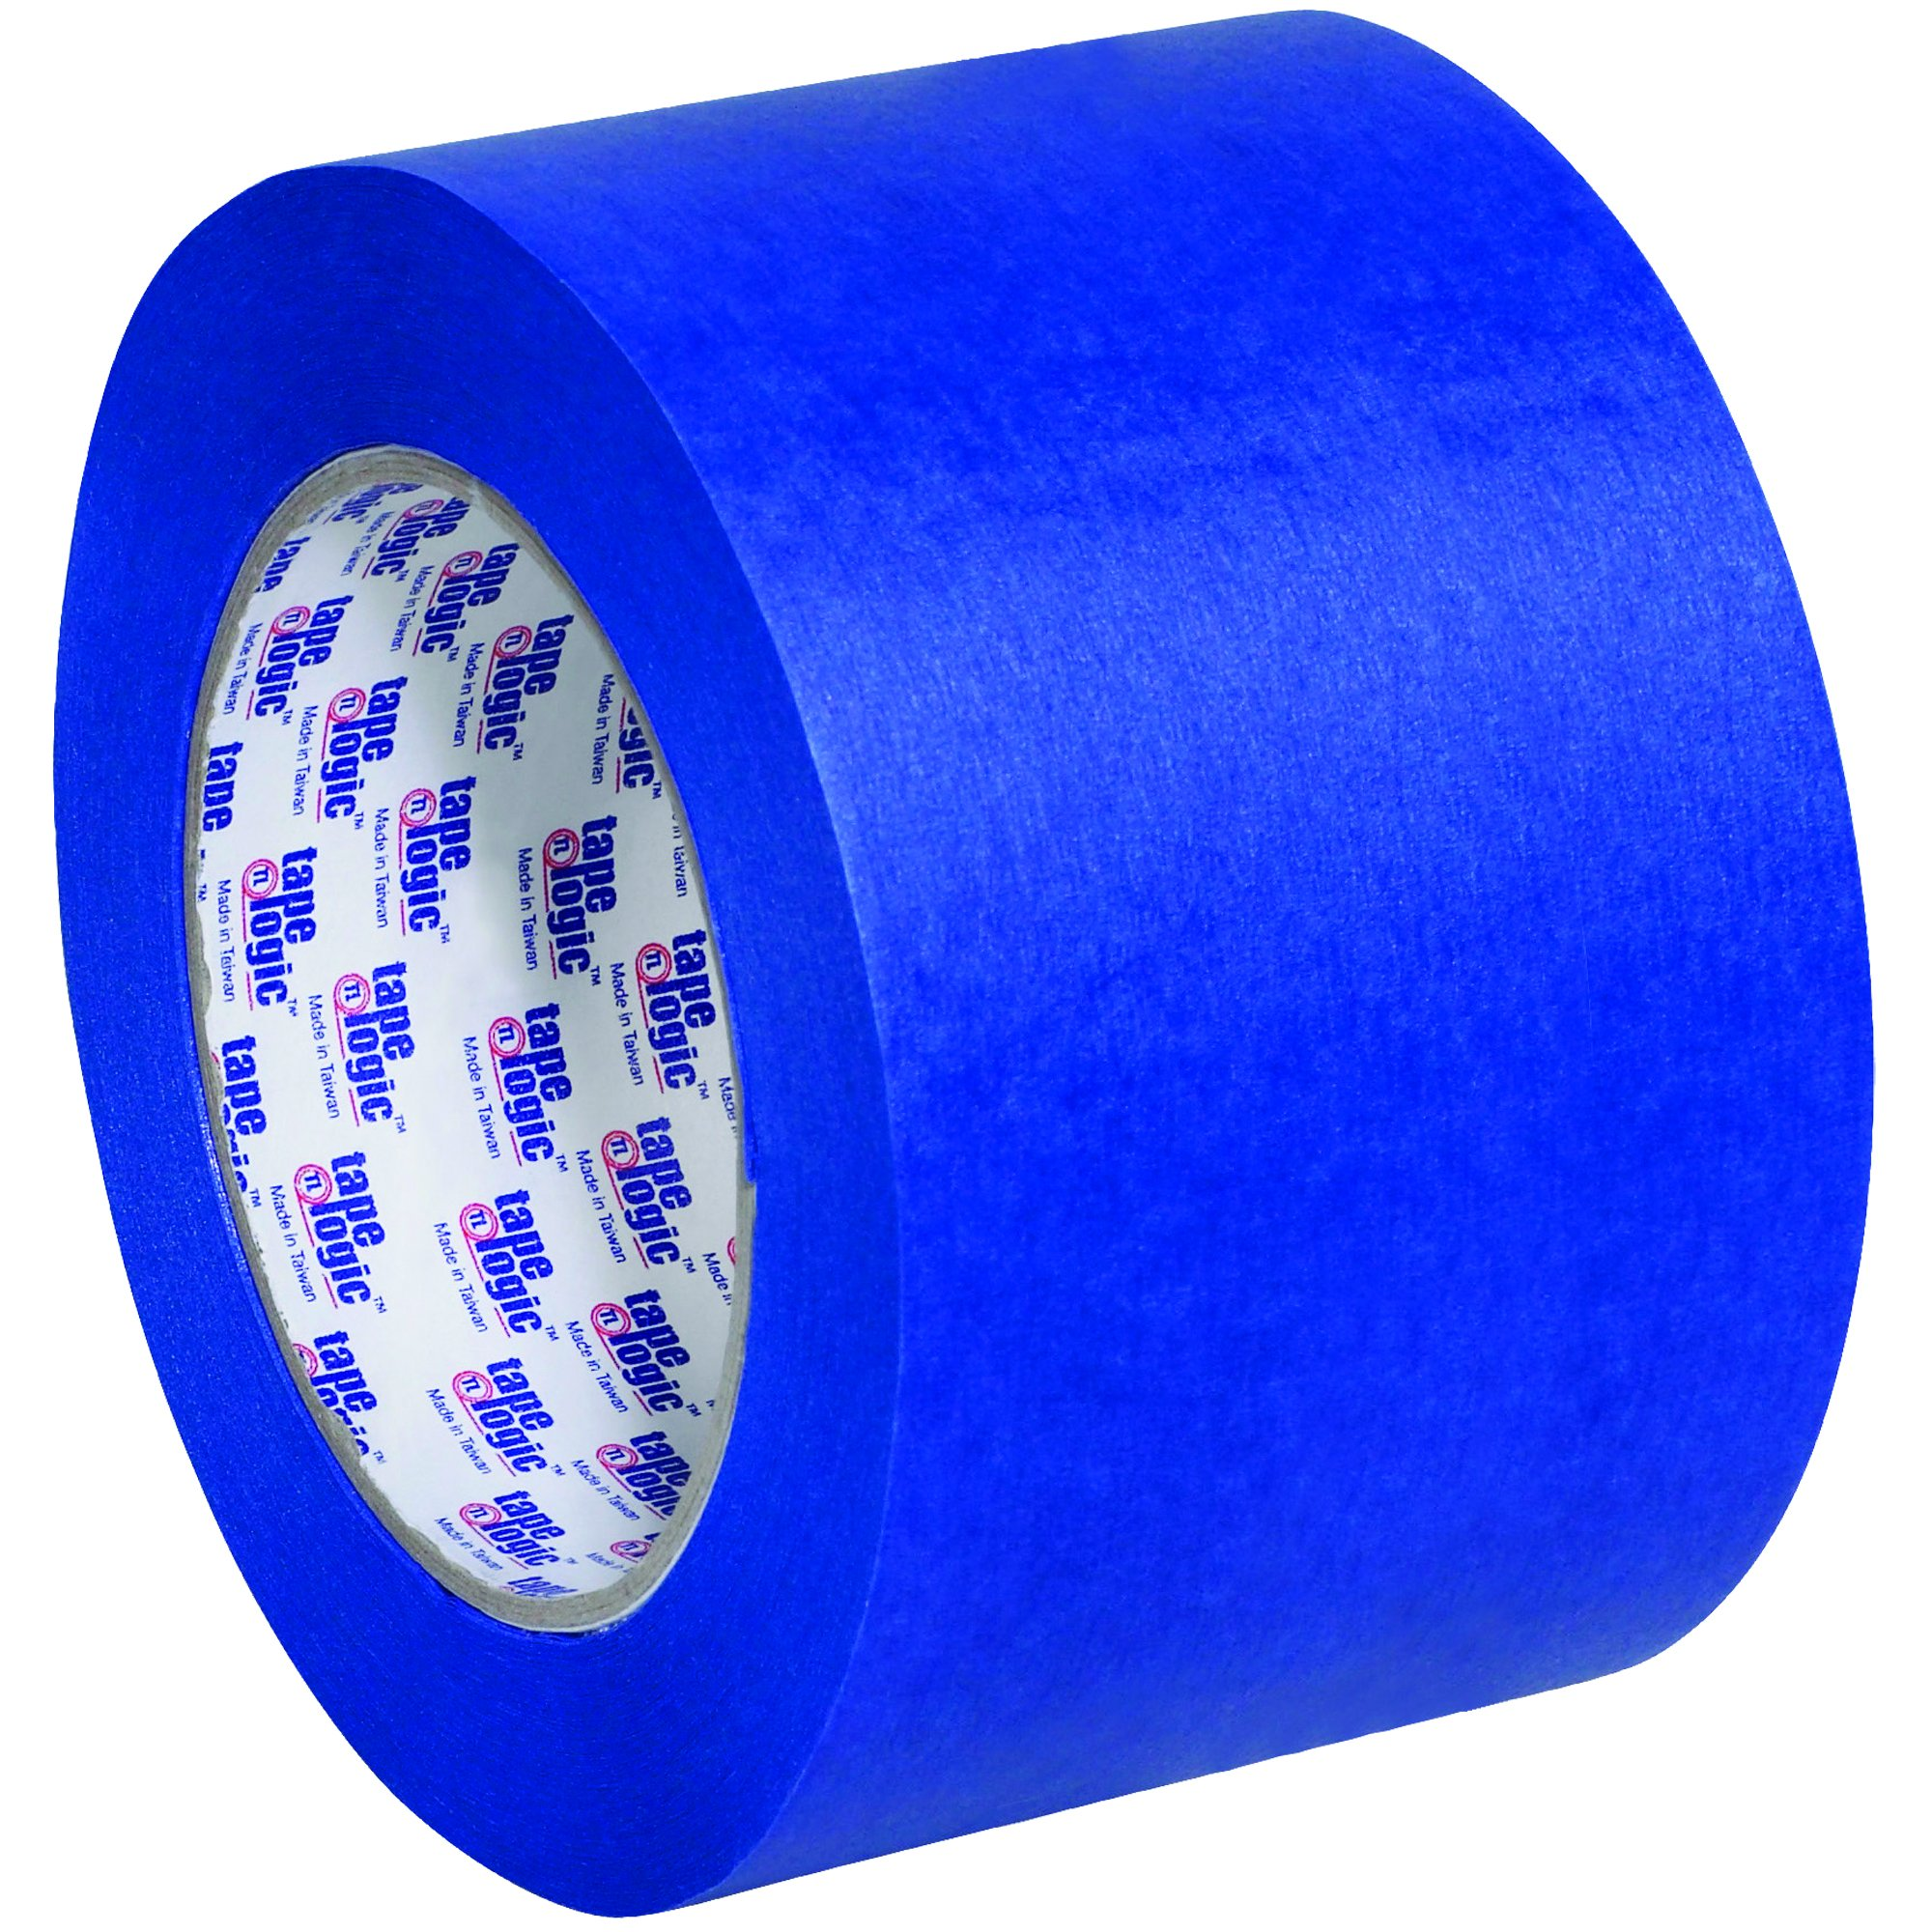 BOX USA BT9383000 Tape Logic 3000 Painter's Tape, 3'' x 60 yd., Blue (Pack of 16) by BOX USA